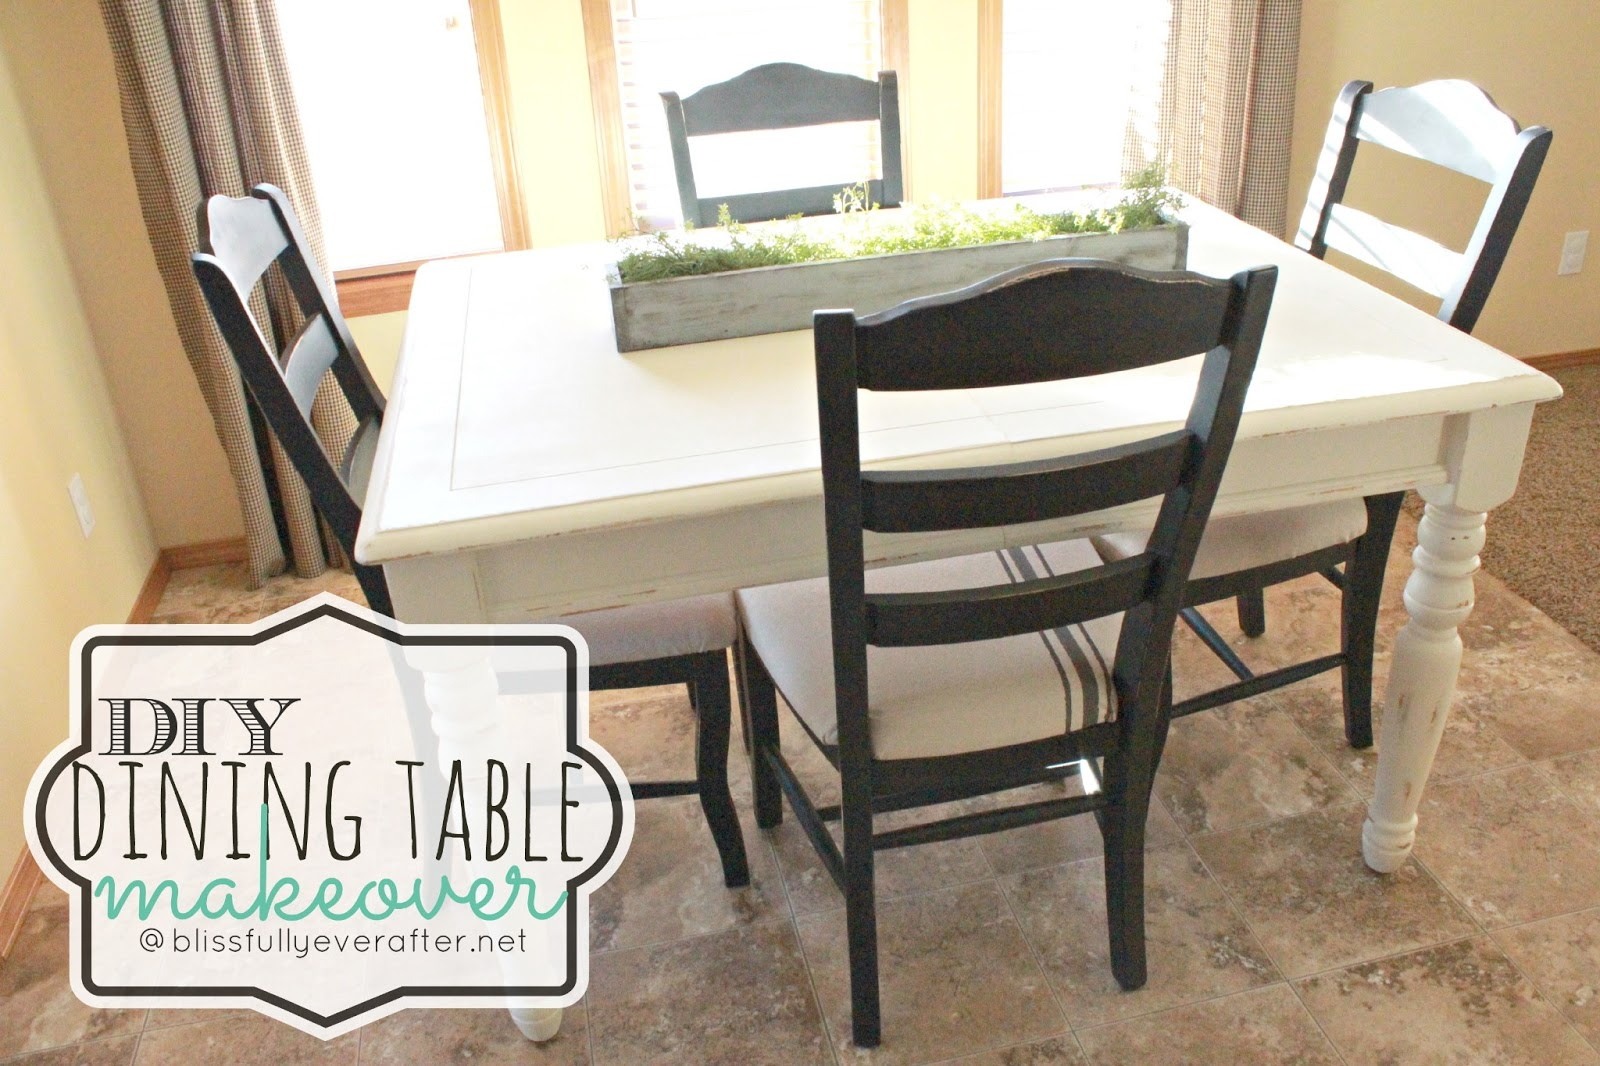 Diy dining table ideas large and beautiful photos photo for Homemade dining room table ideas